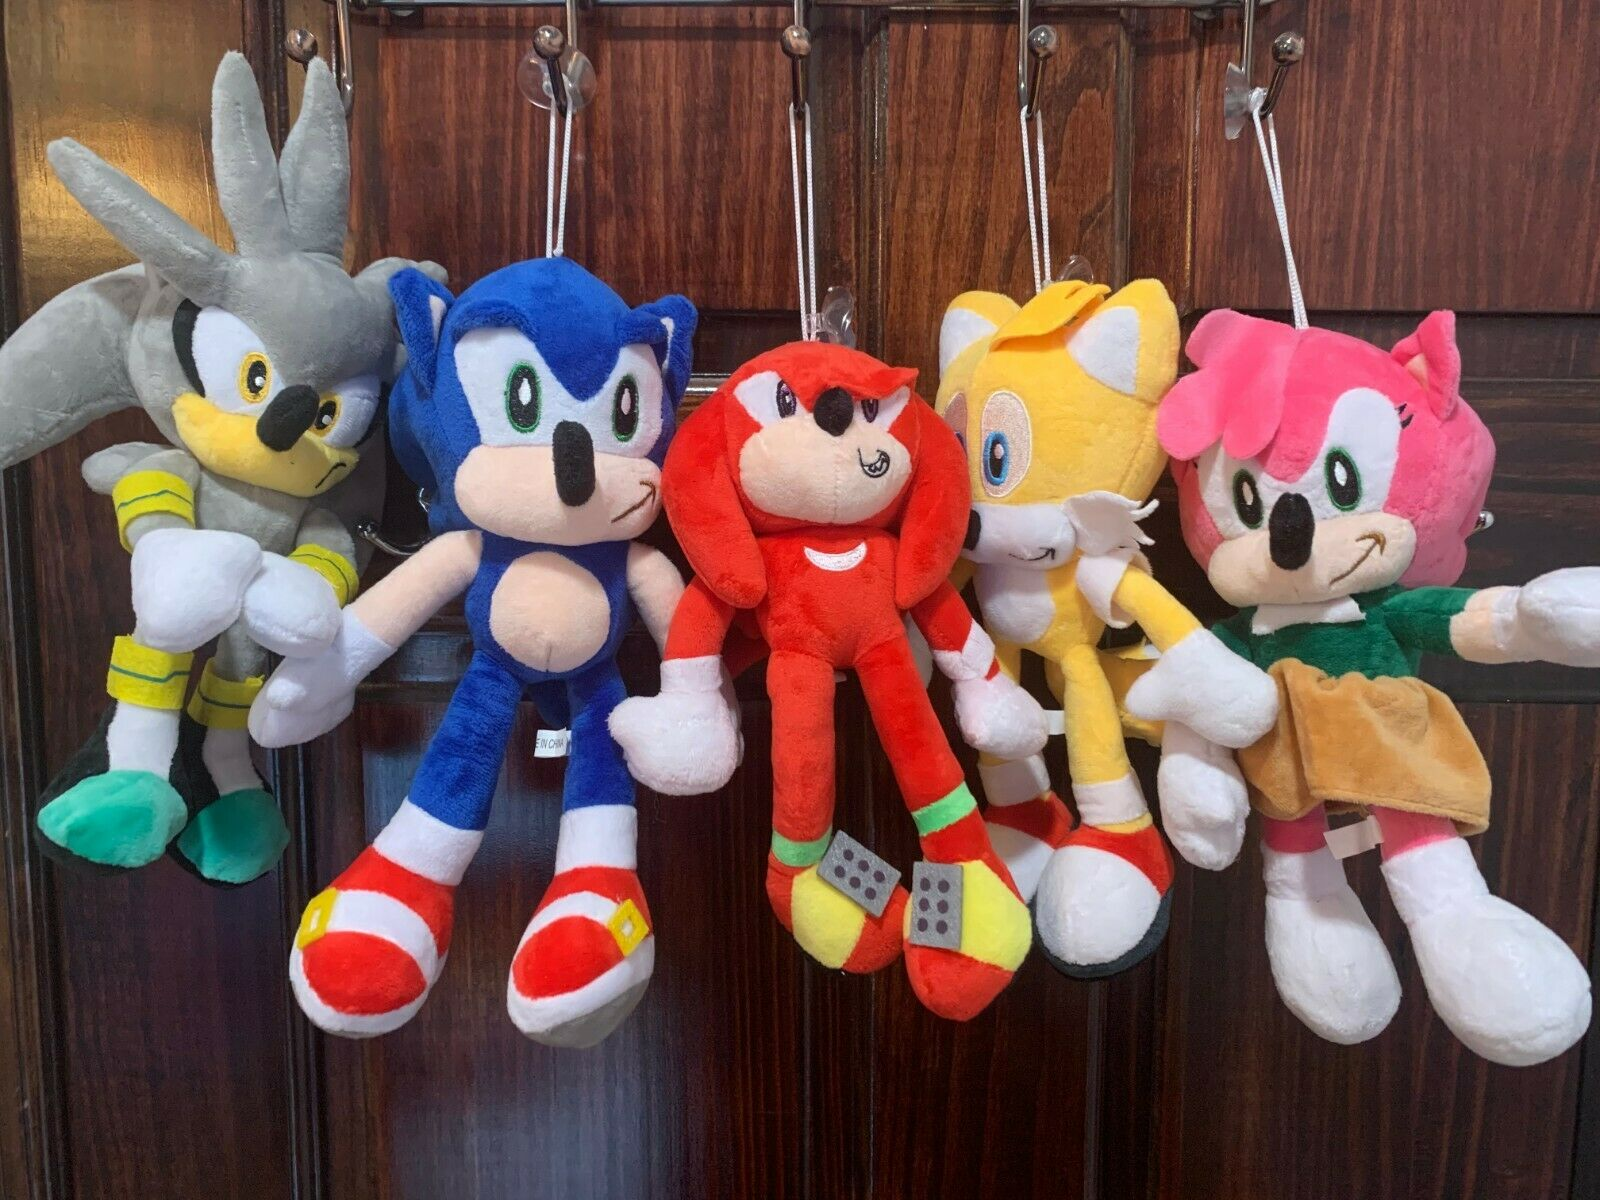 Sonic The Hedgehog Amy Rose 10 Plush Doll Figure Toy Pink Sega Official 7053 For Sale Online Ebay